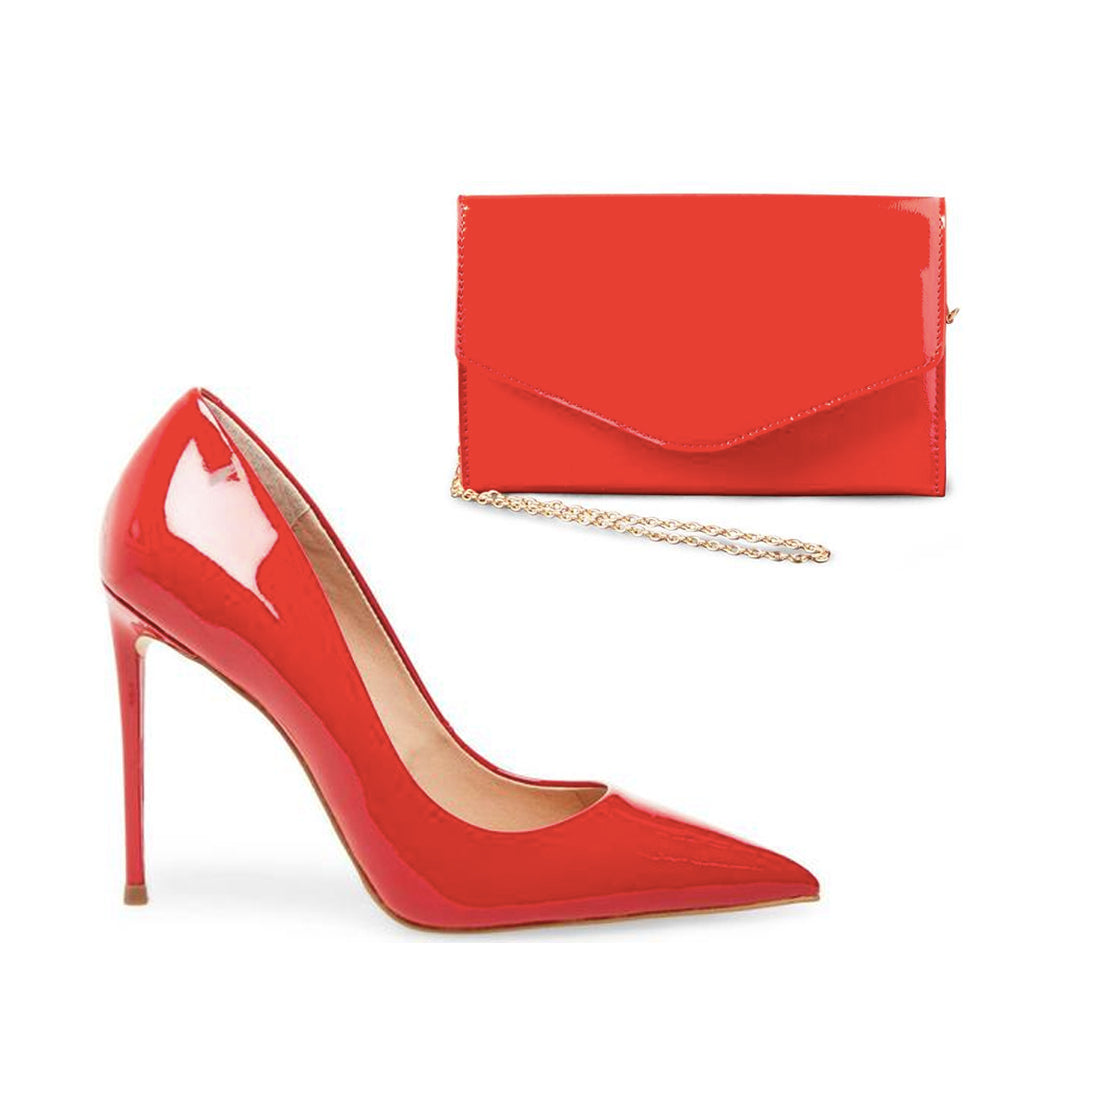 VALA + BWORLDLY RED PATENT